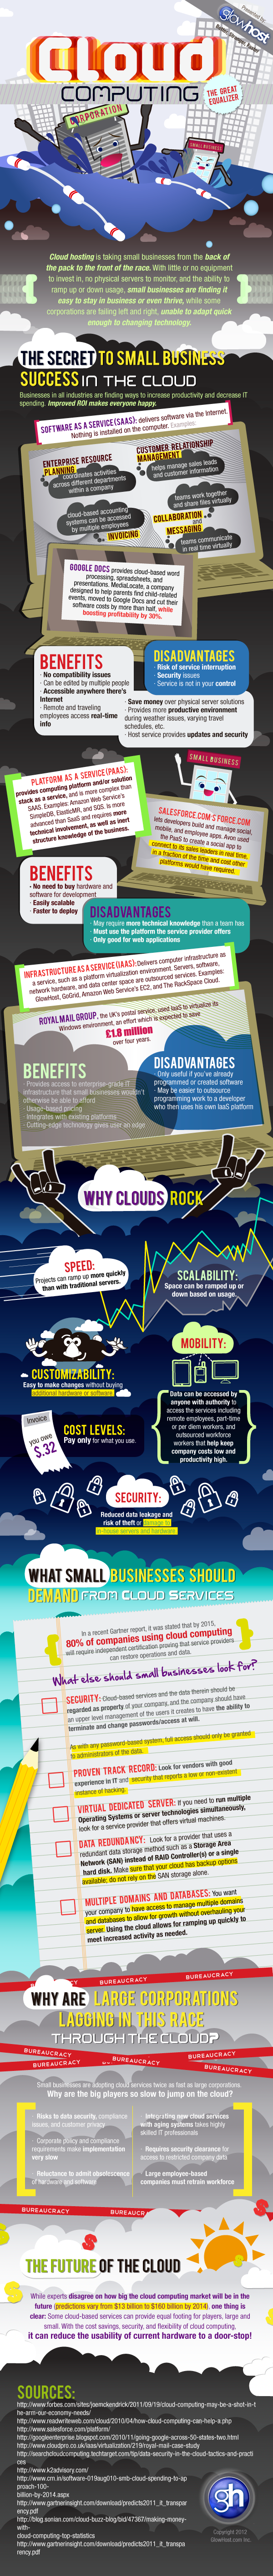 How Small Business Can Prosper In The Cloud